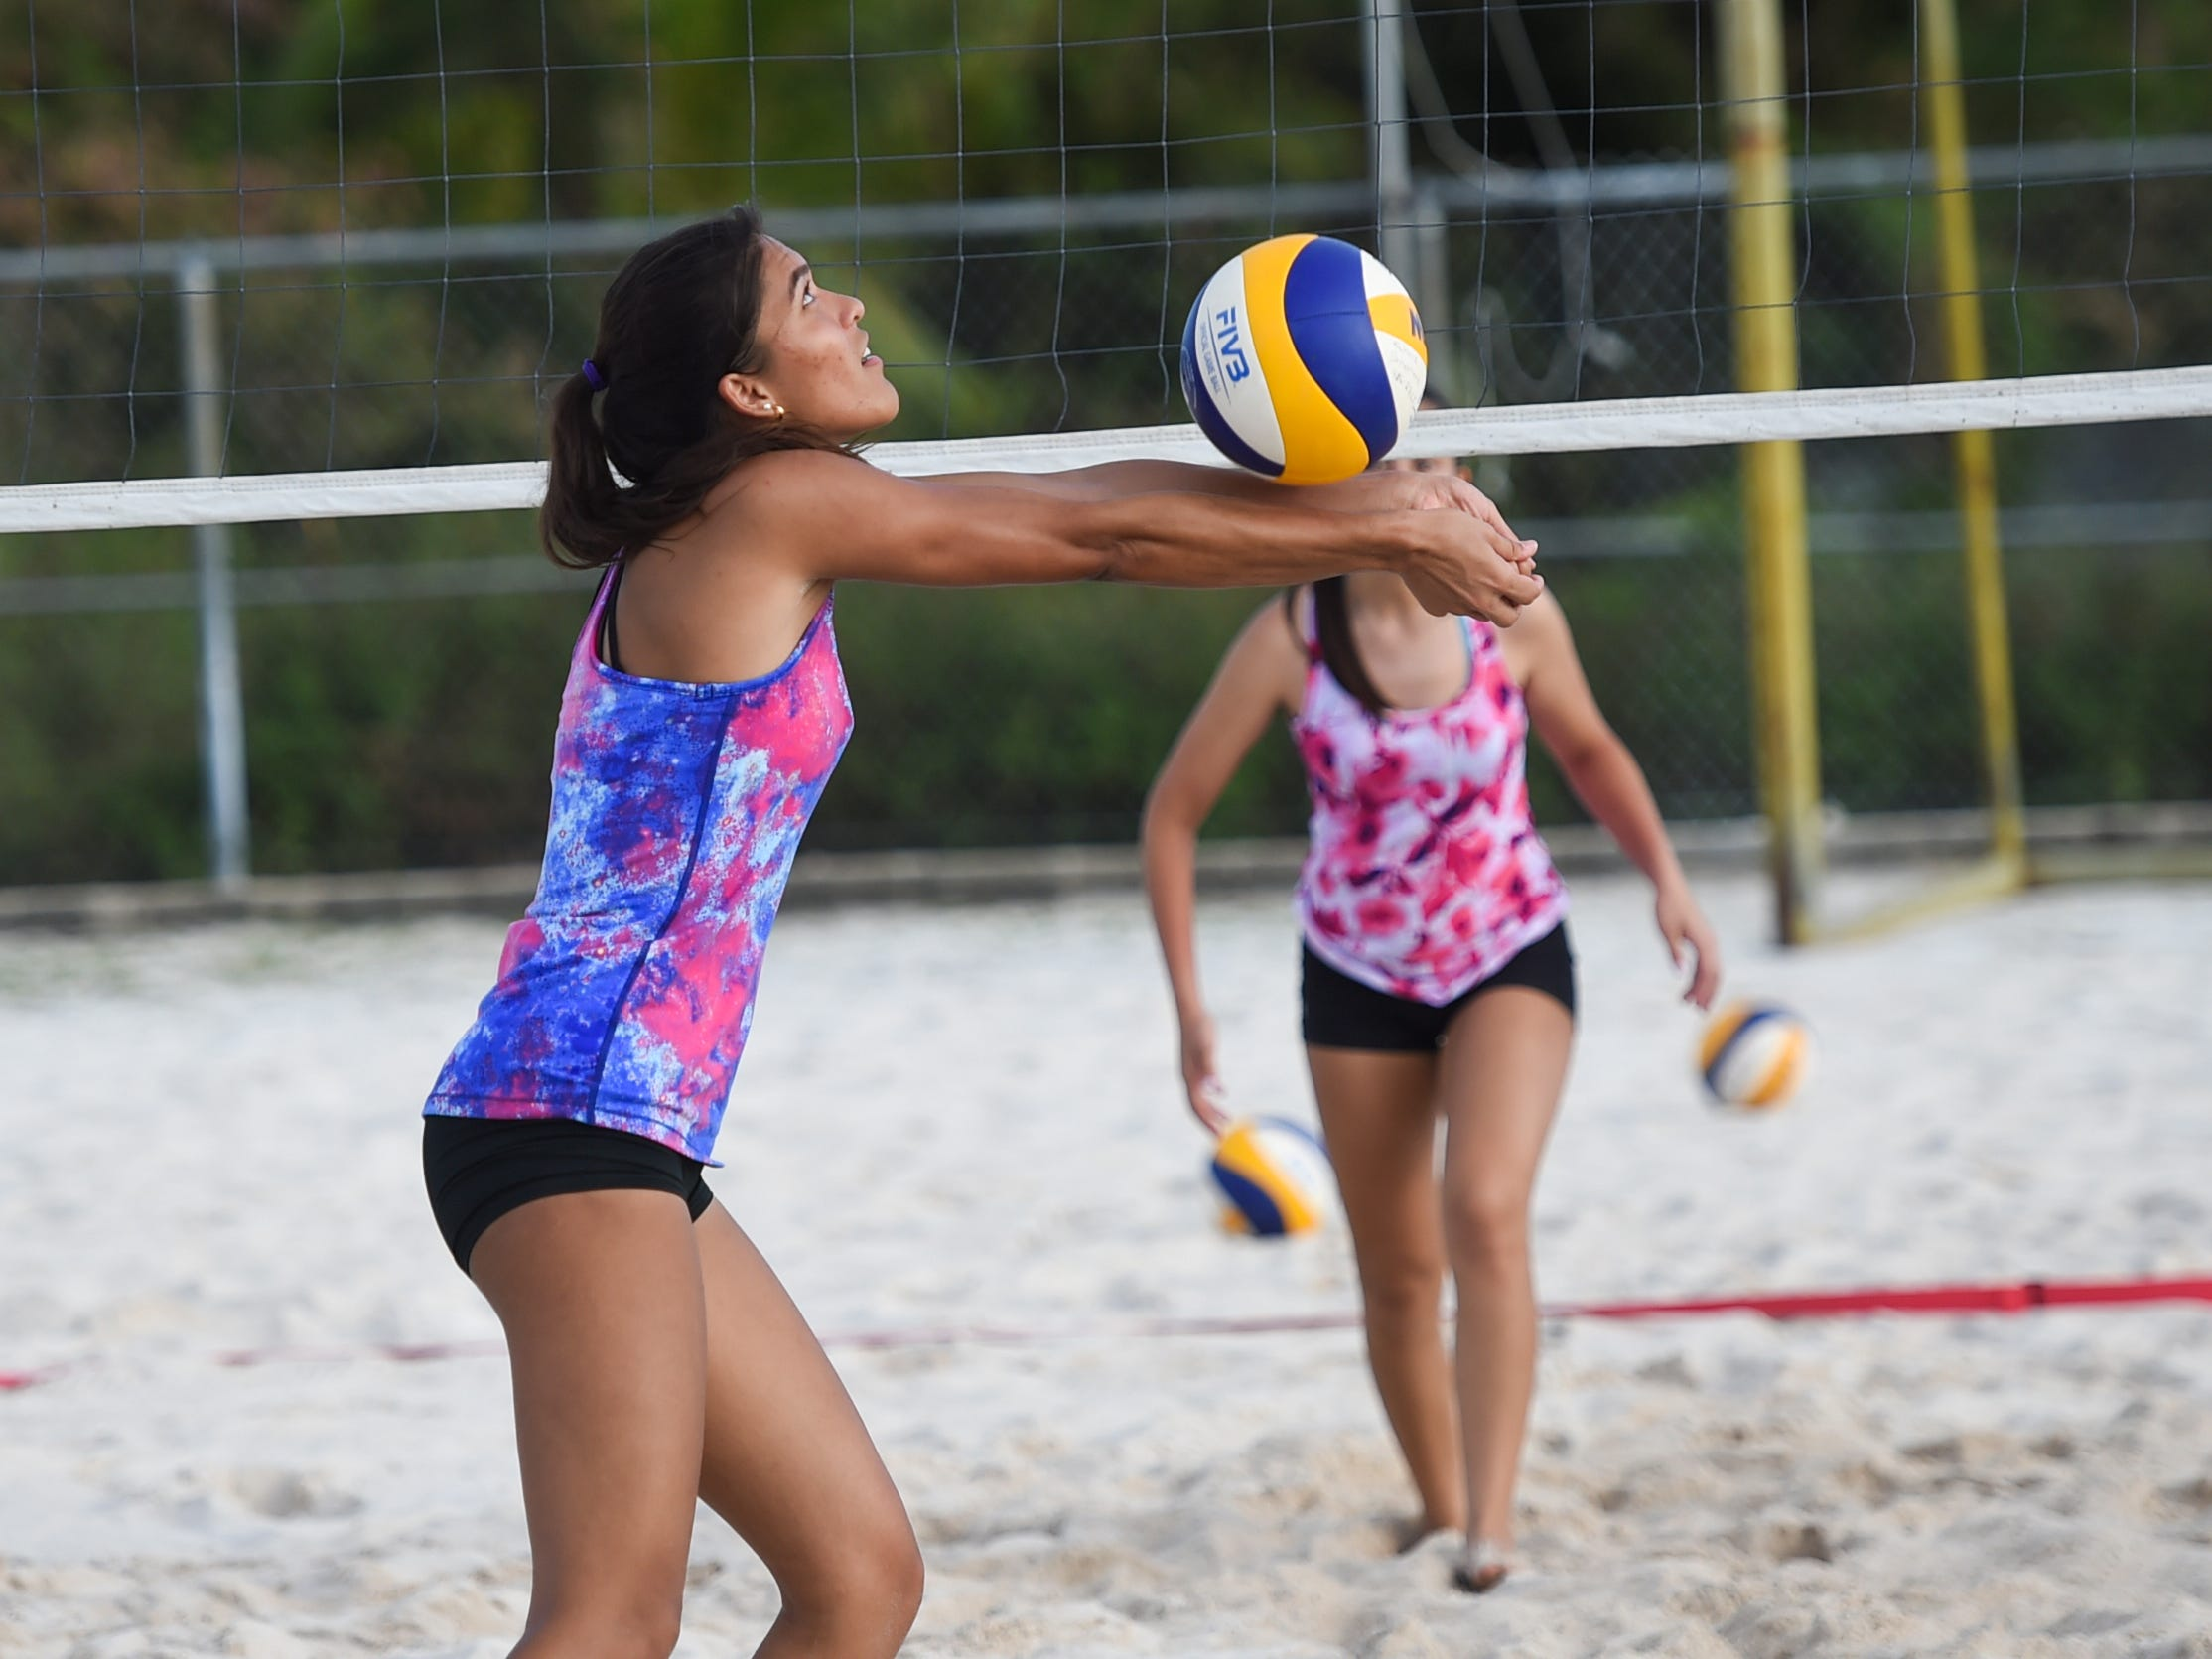 St. John's Knights White's Laressa Halladay bumps the ball during the IIAAG Beach Volleyball third place game at the Guam Football Association National Training Center in Dededo, March 12, 2019.